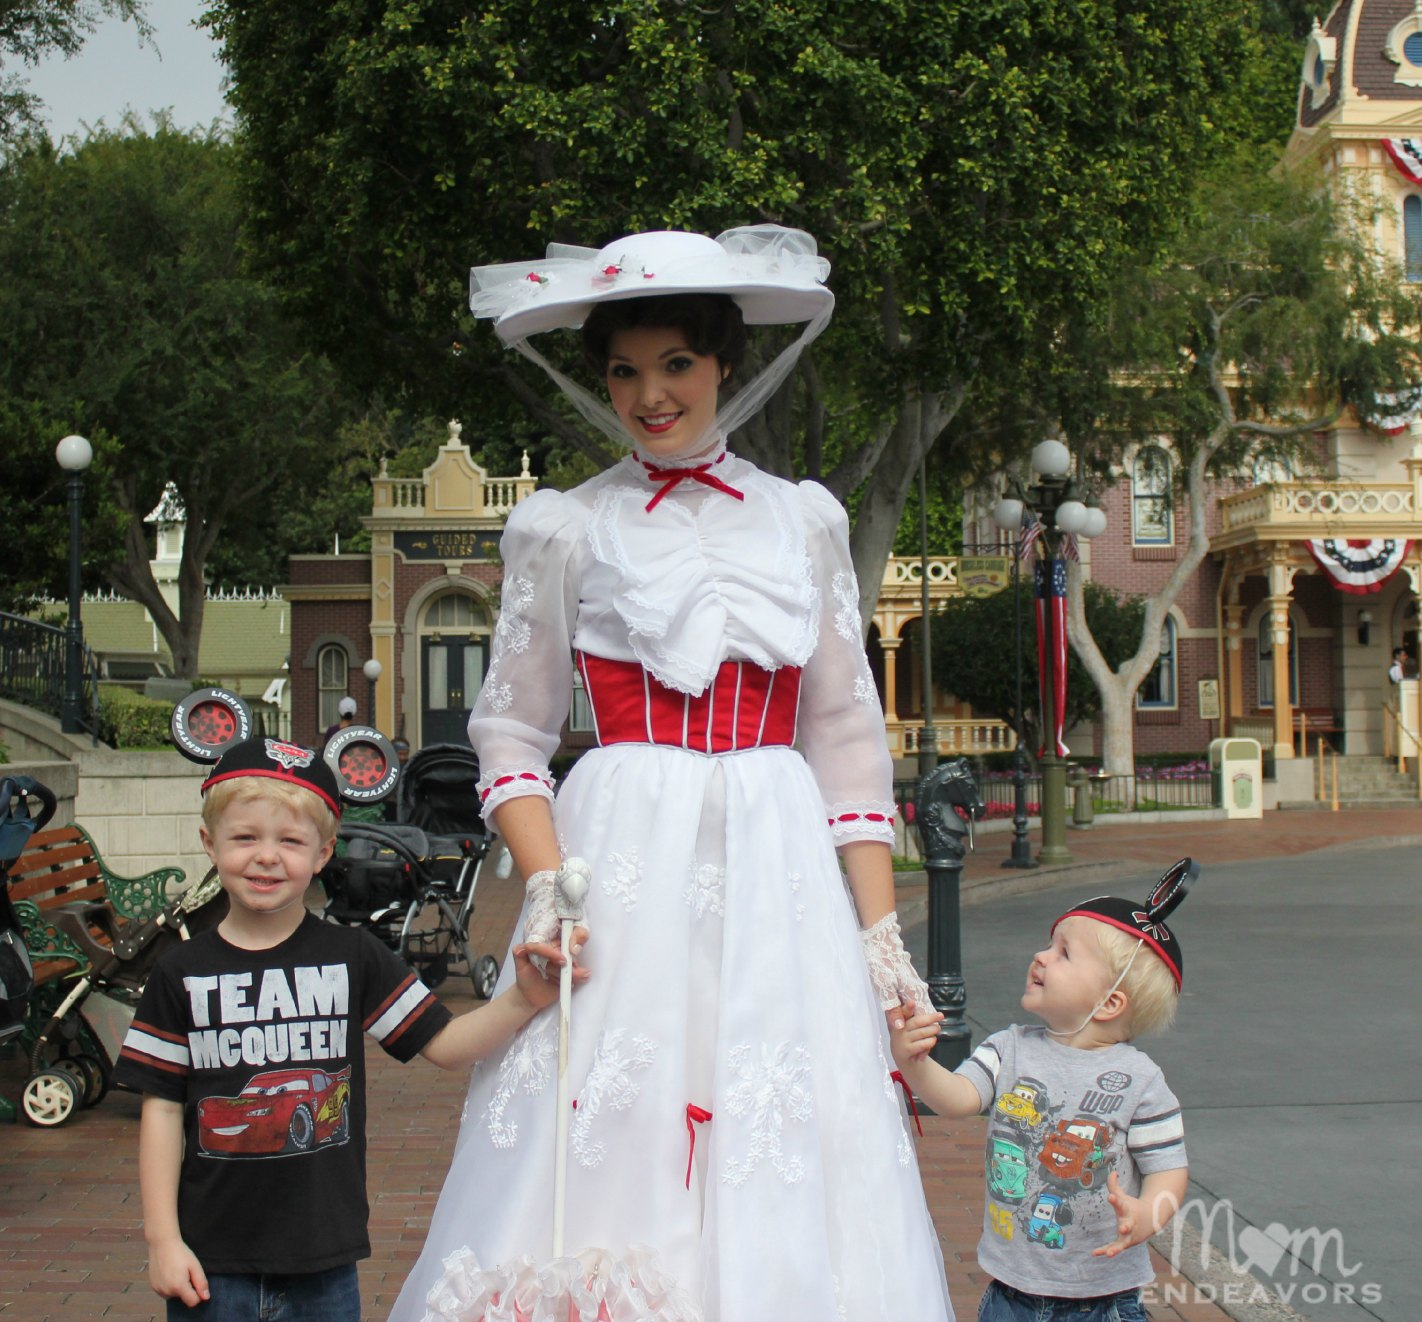 Mary Poppins at Disneyland